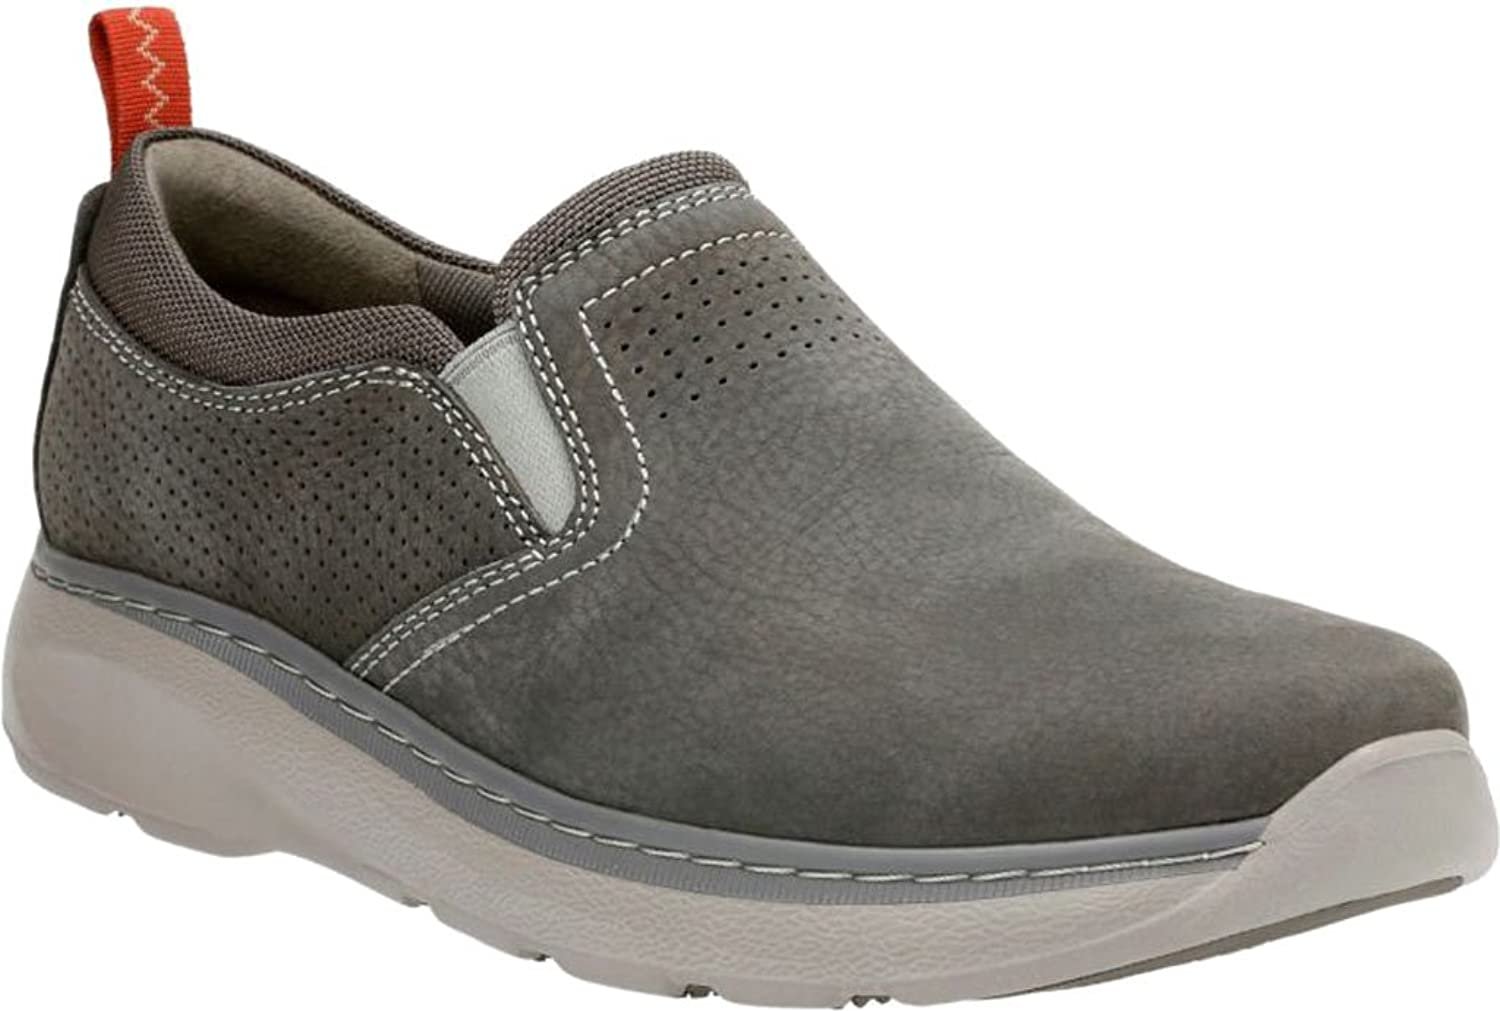 Clarks Men's Charton Free Slip-On Sneaker, Grey Cow Nubuck/Textile, US 13  W: Buy Online at Low Prices in India - Amazon.in